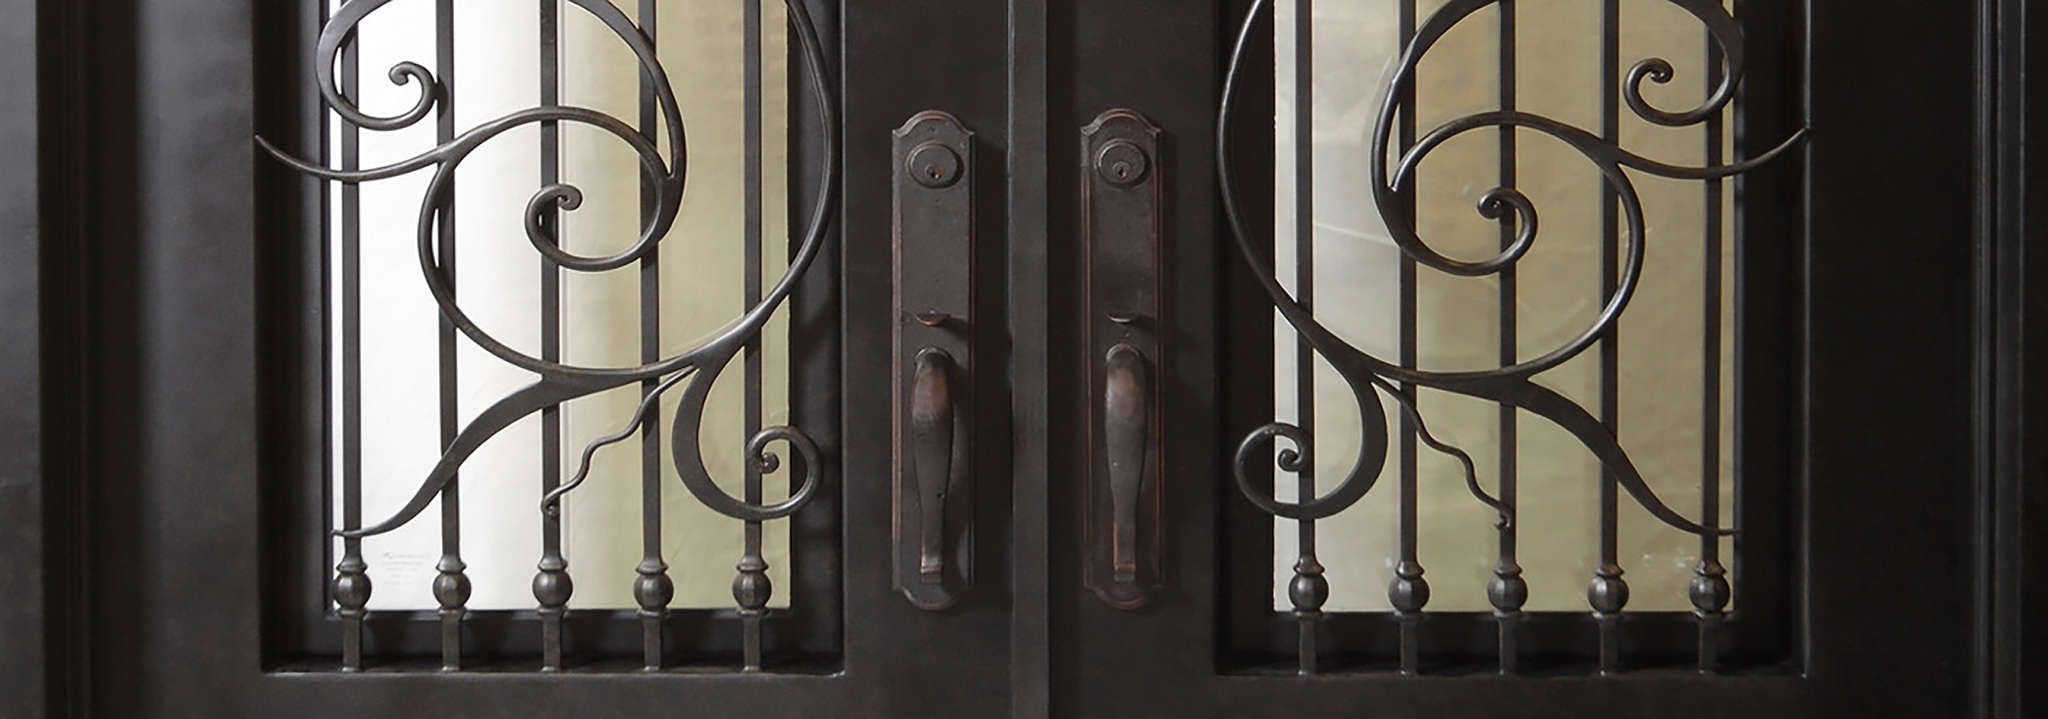 Wrought Iron custom made Harware products: hand forged in Nelson, New Zealand